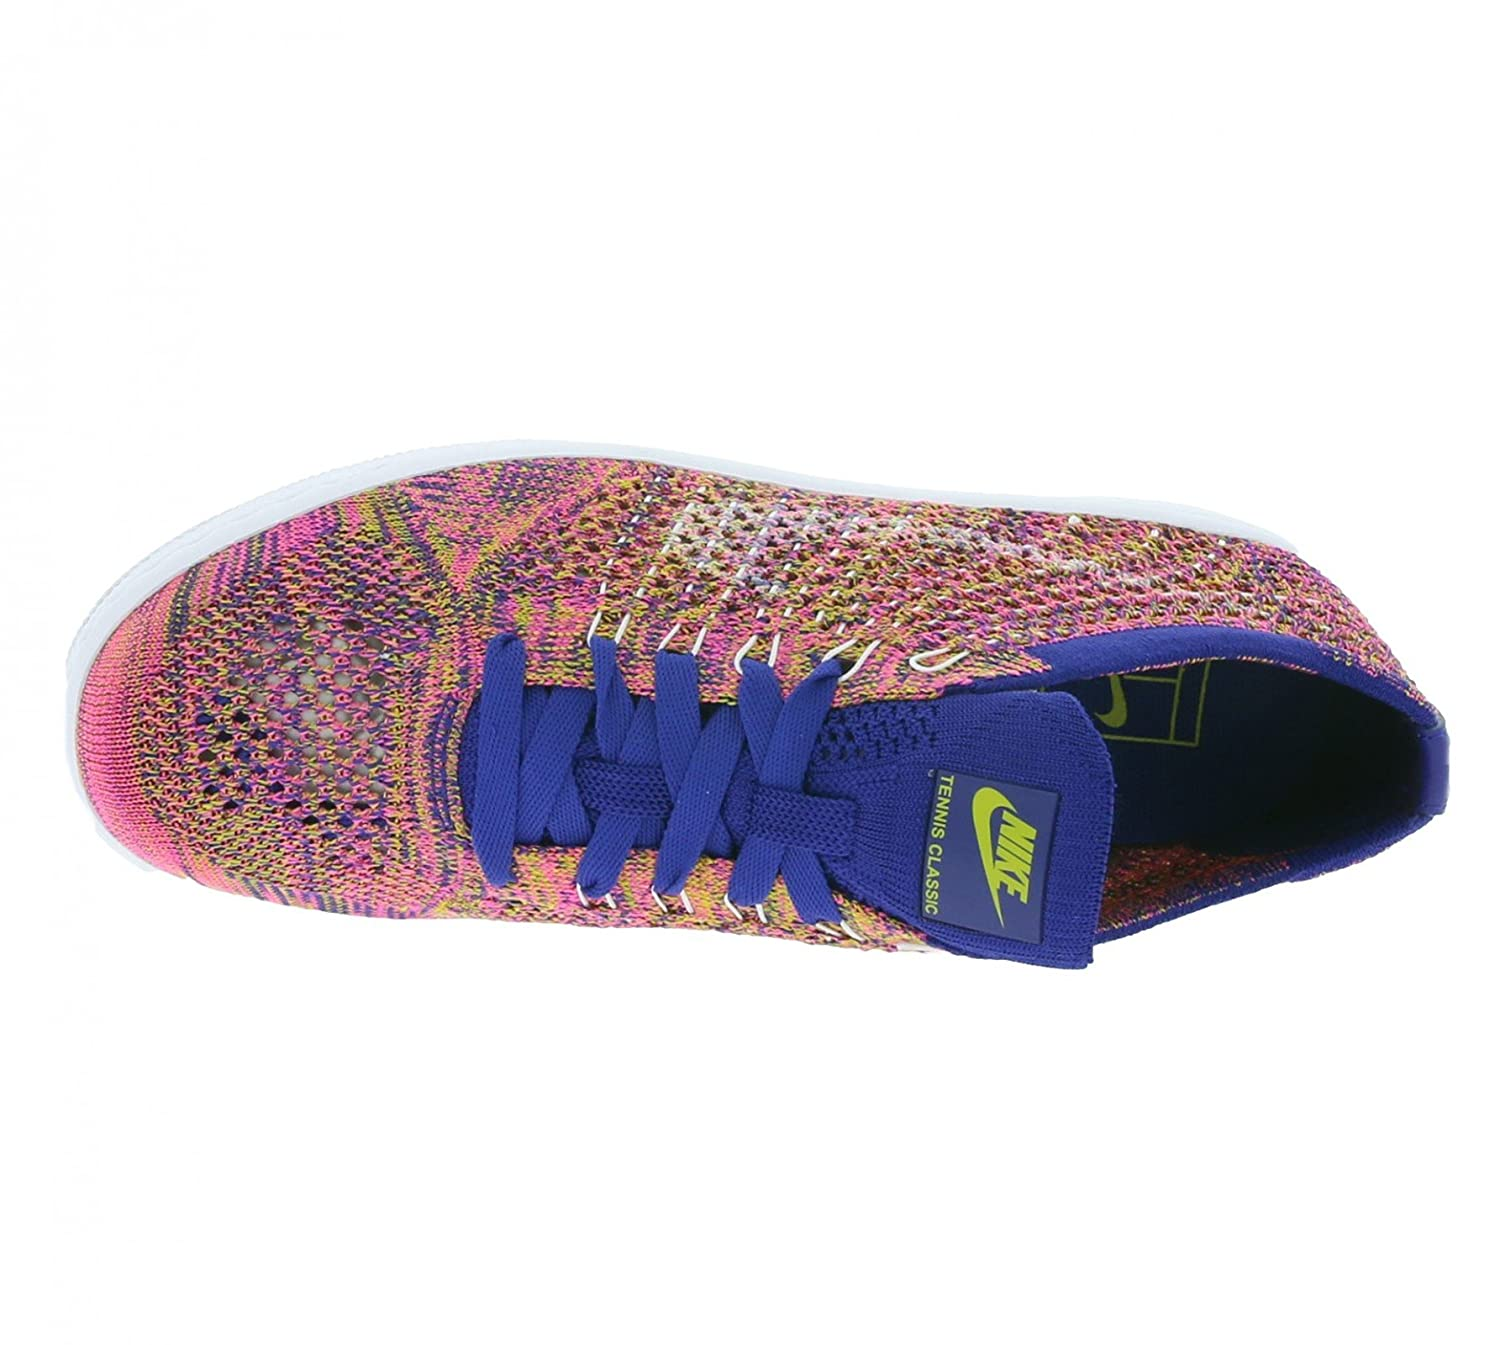 outlet store 2377c b2fa9 Amazon.com   Nike Tennis Classic Ultra Flyknit Womens Fashion-Sneakers  833860   Road Running